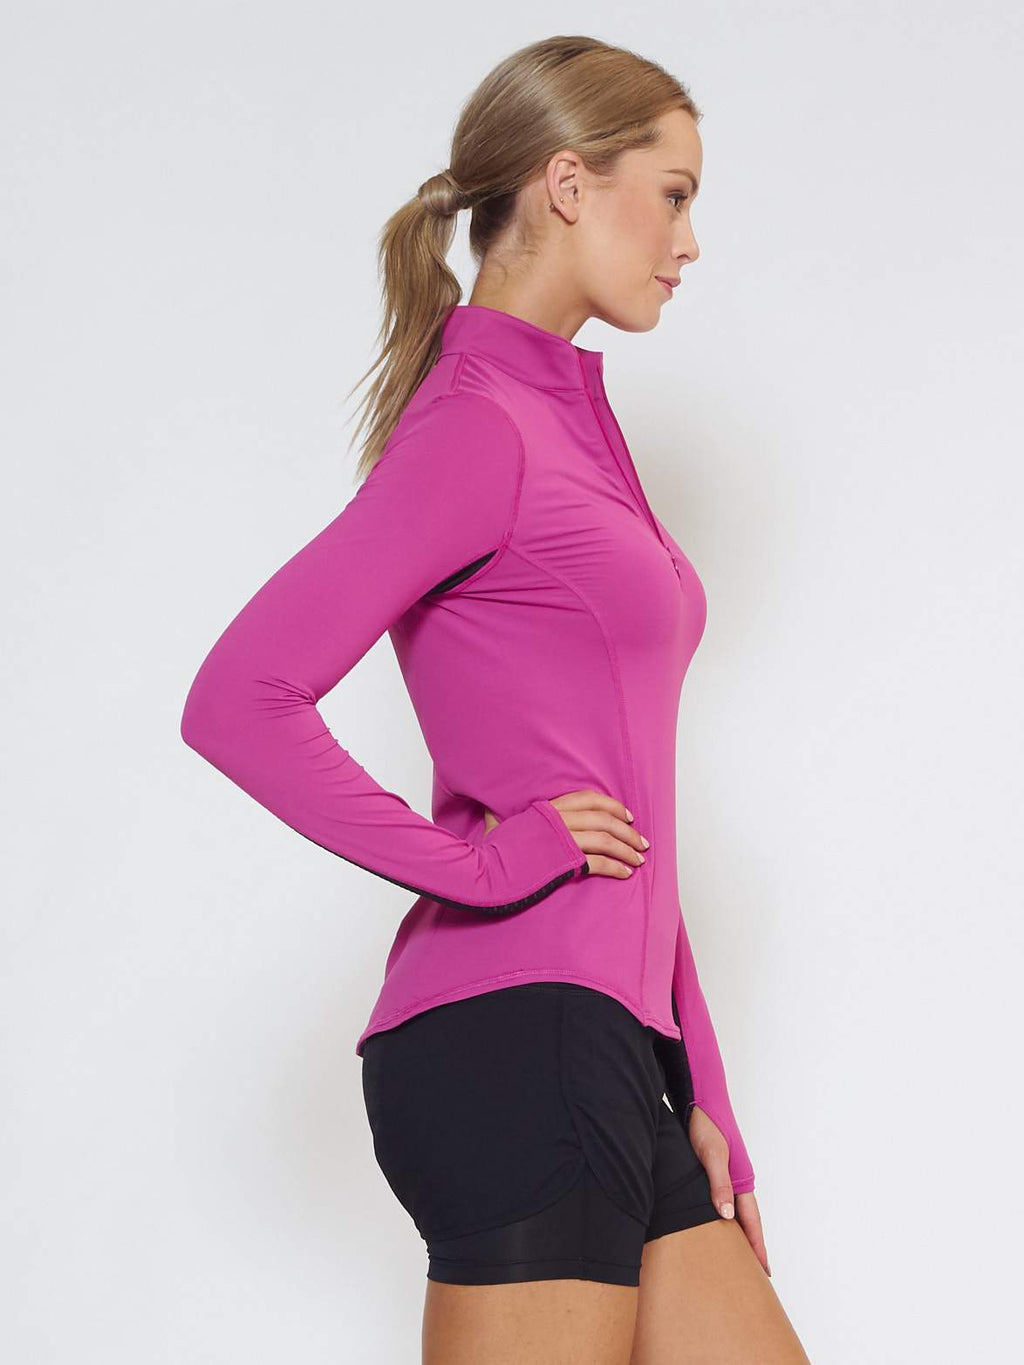 MUV Sportswear Long Sleeve Top LIQUID Long-Sleeve Collared Shirt - Wild Purple